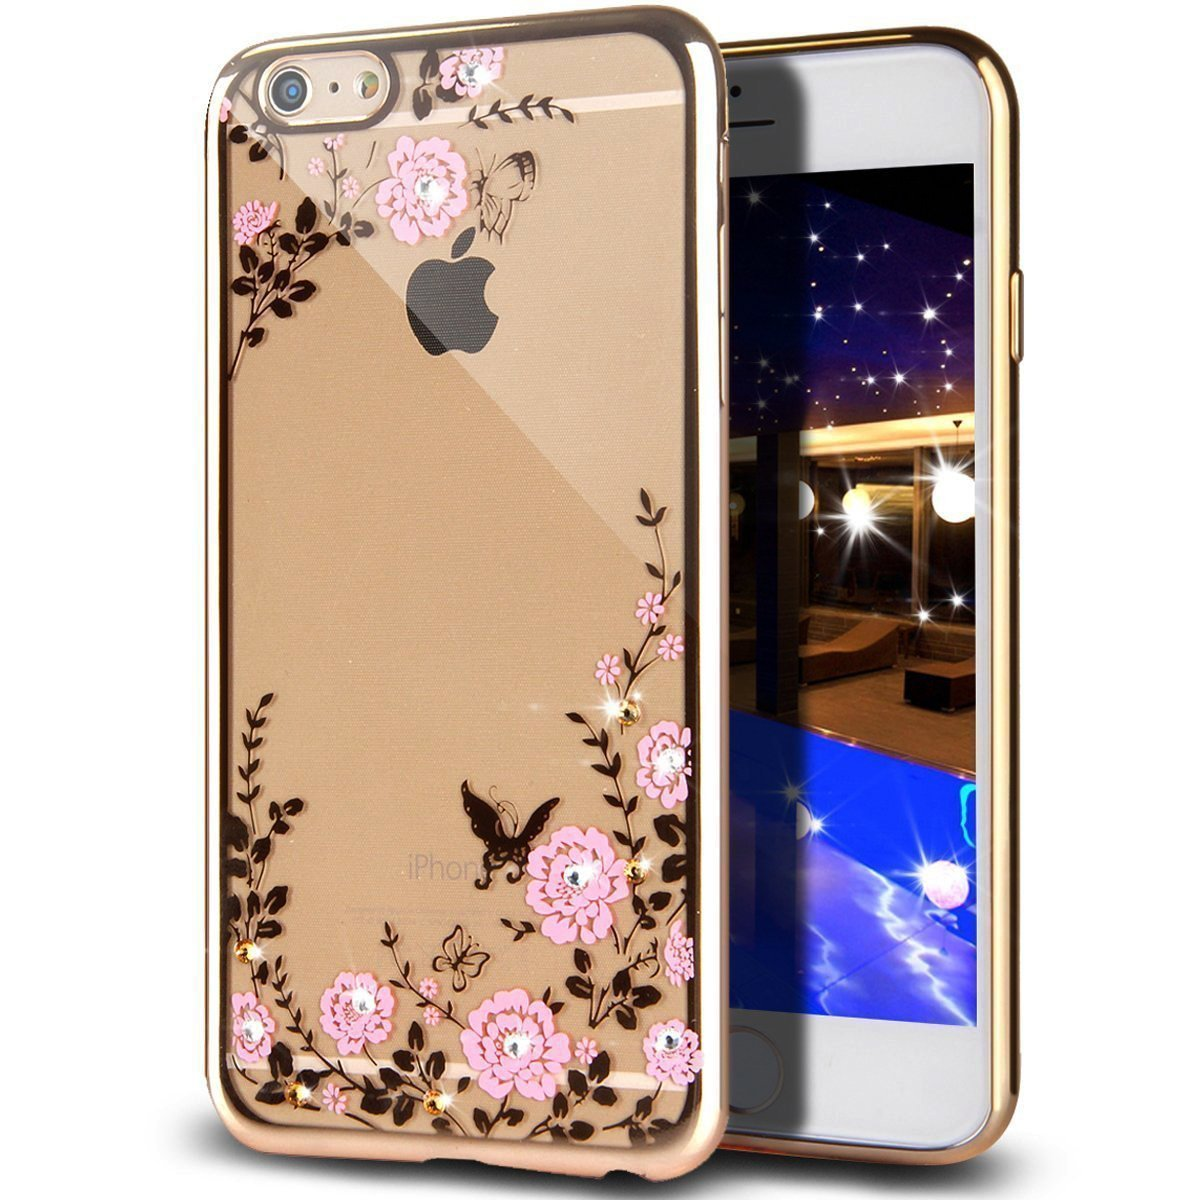 Obal / kryt Crystal Flowers pro iPhone 6s / 6 (gold)